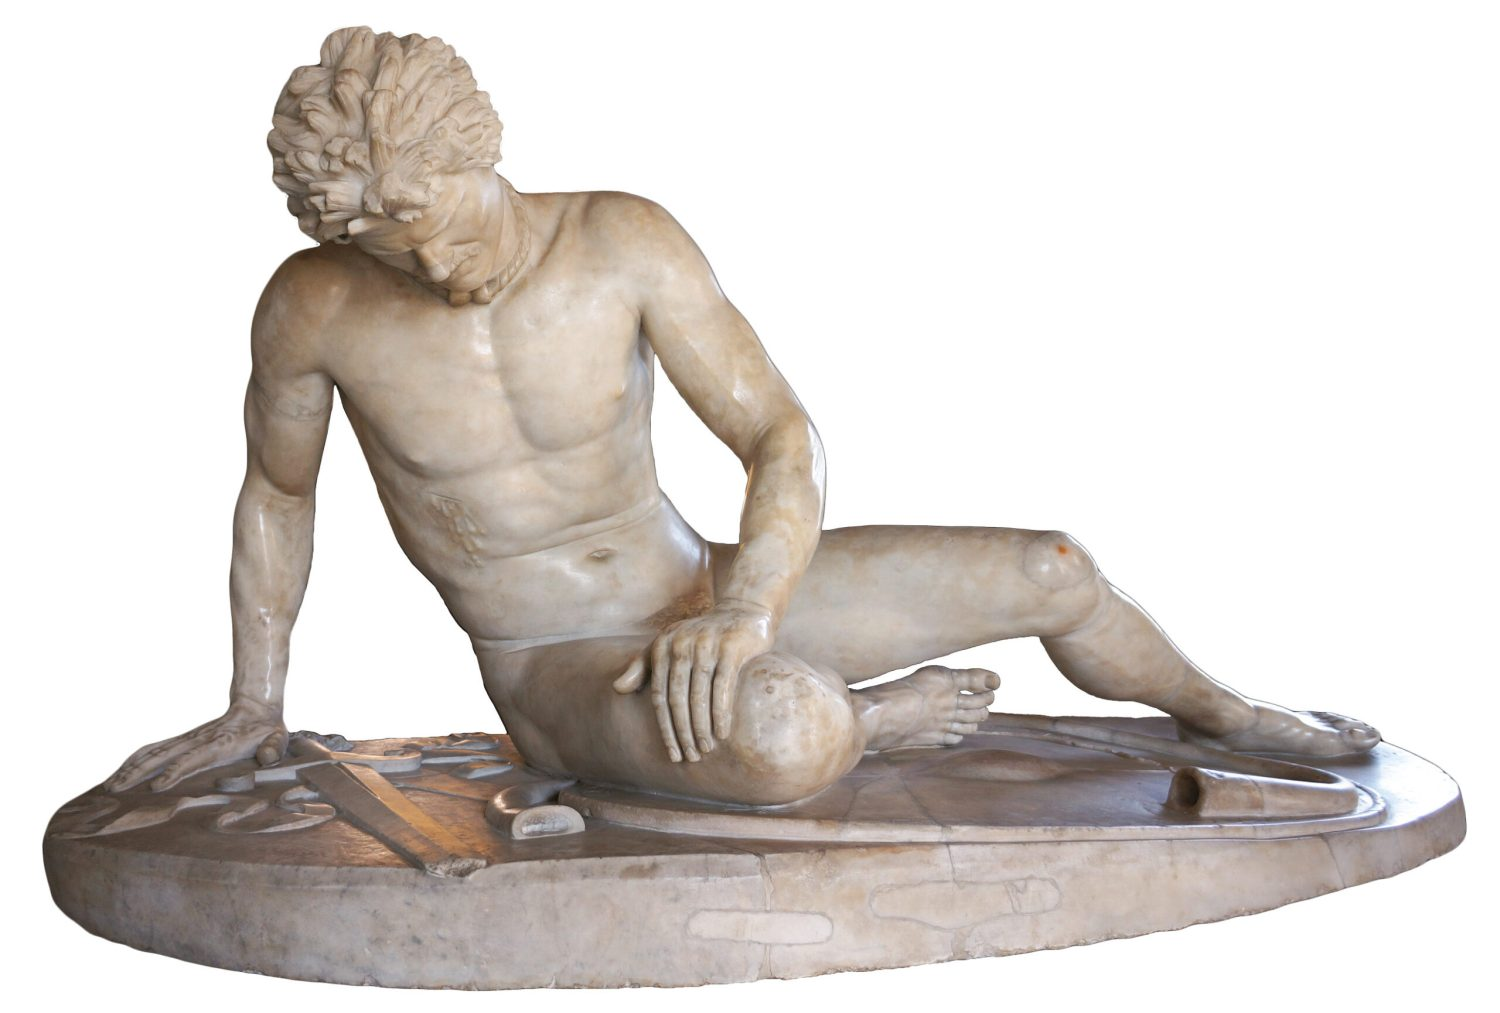 Below The Dying Gaul. This famous Hellenistic sculpture, believed to have belonged to Julius Caesar, depicts 'the noble savage' in the form of a fallen Celtic warrior, shown wearing torc, moustache, and lime-washed hair, with shield, trumpet, and broadsword on the ground.